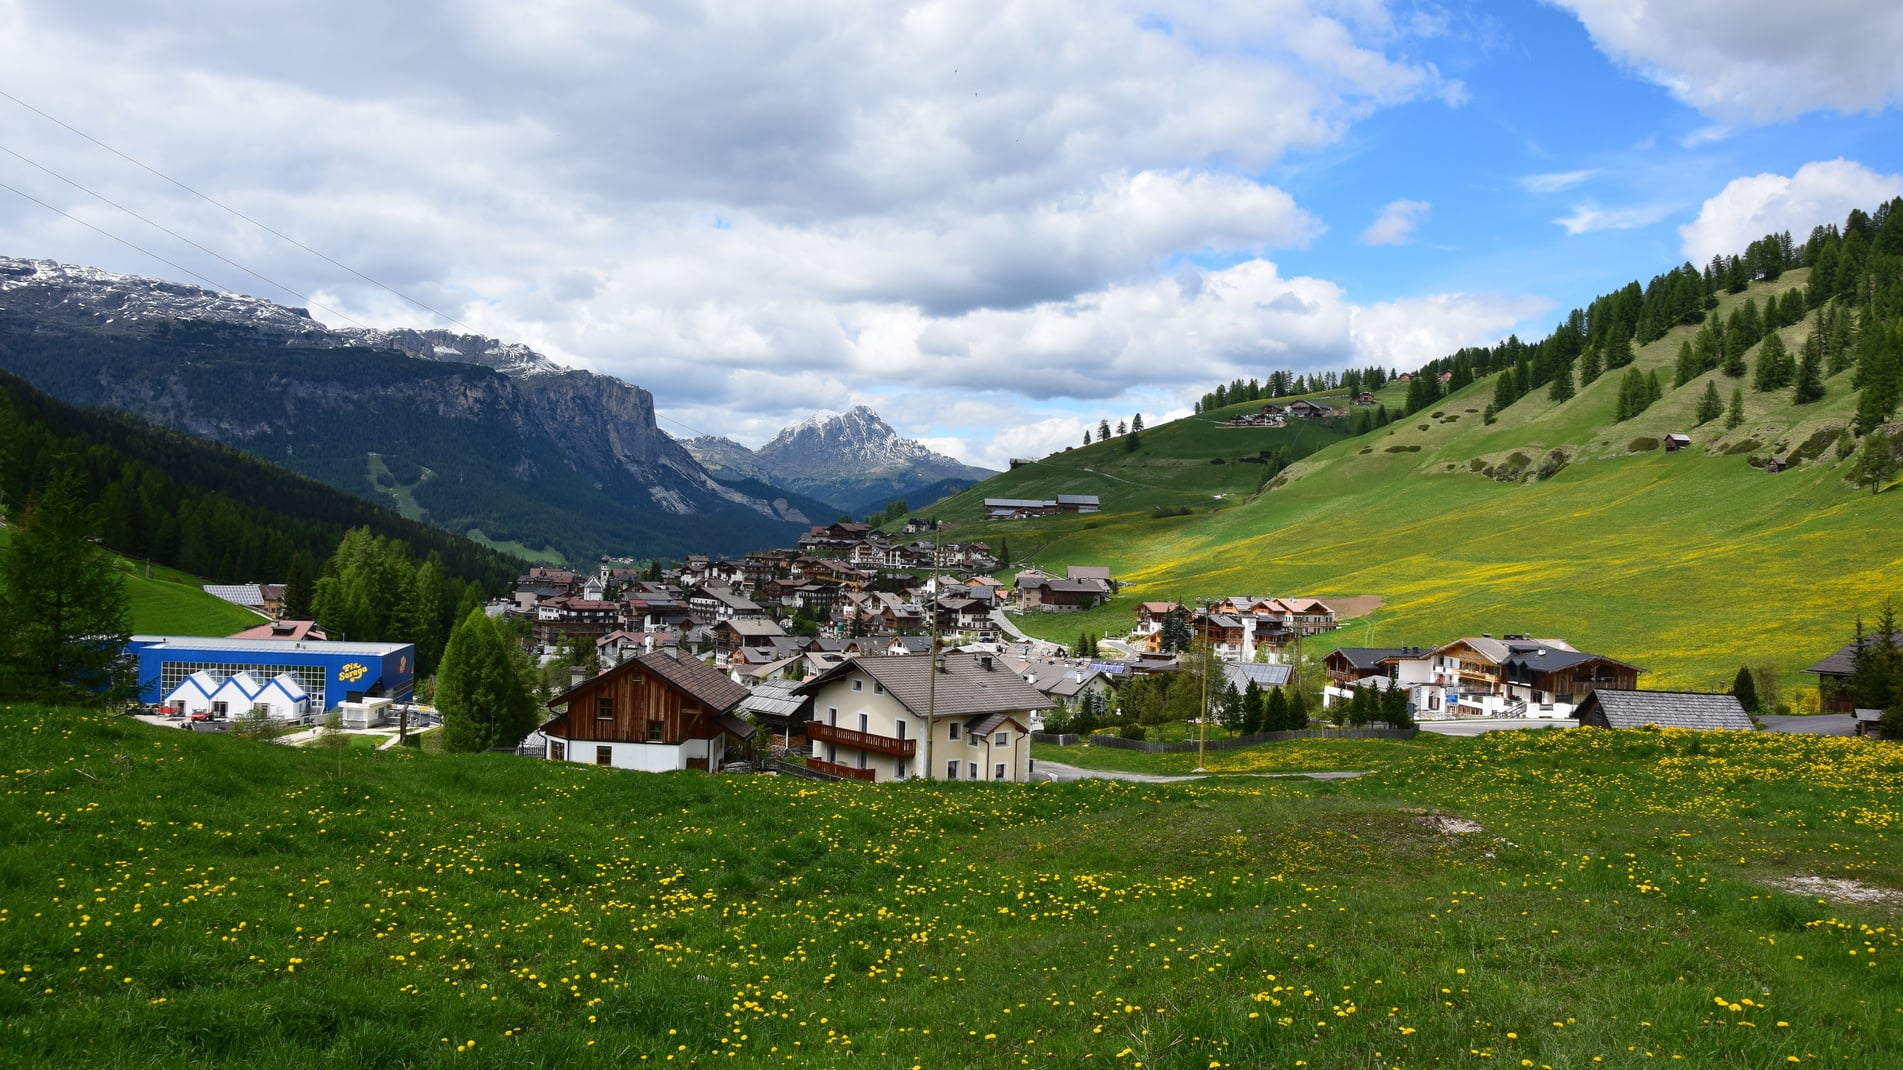 The village San Cassiano